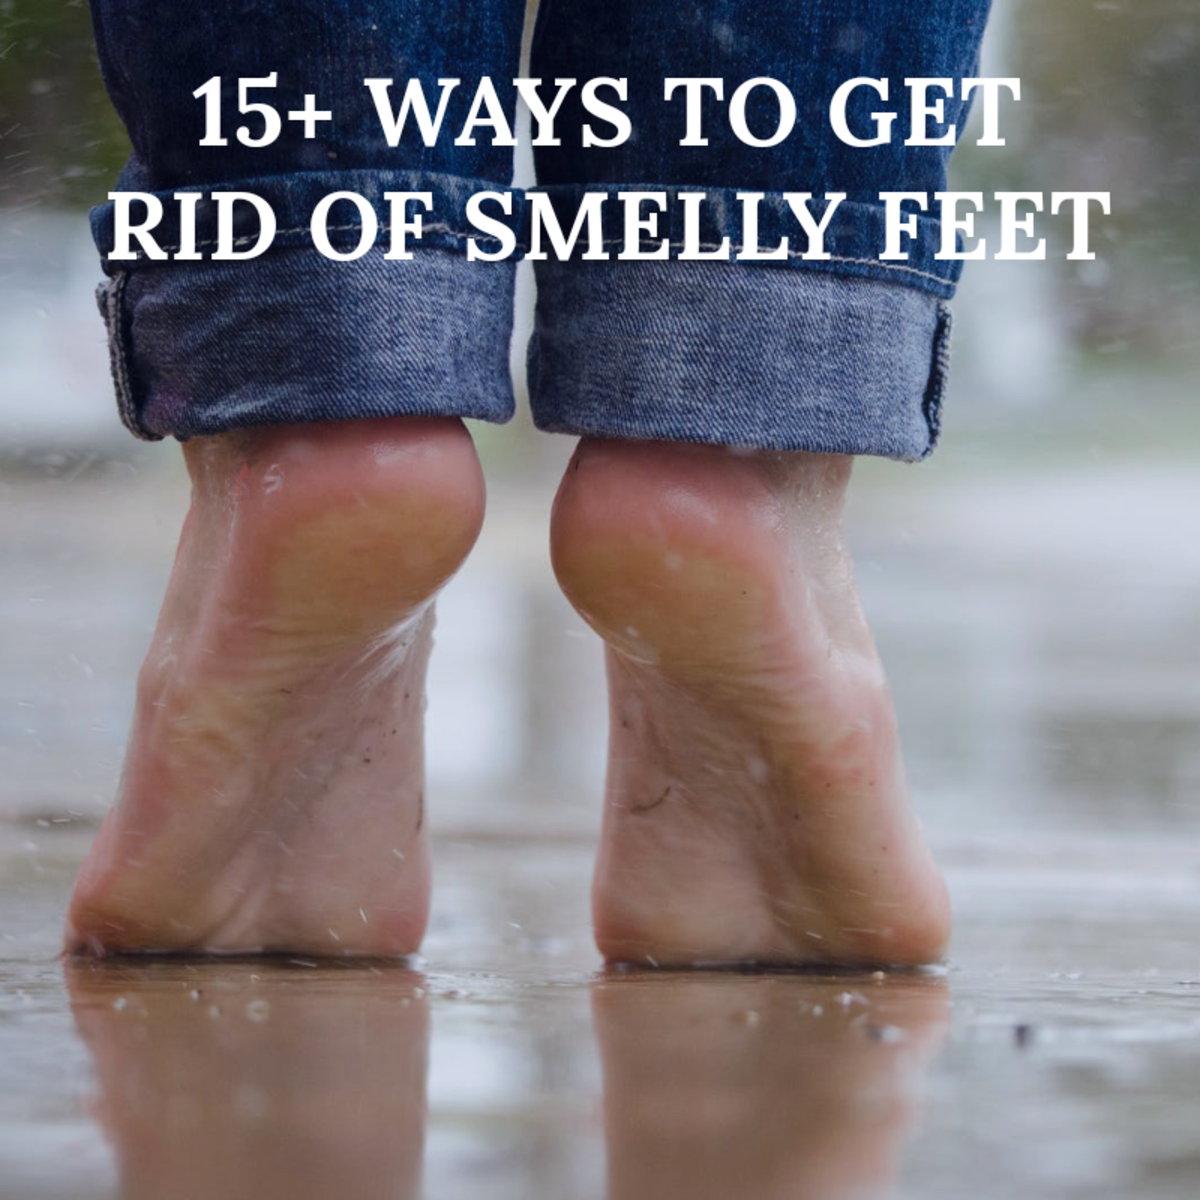 Over 10 Ways to Prevent Smelly Feet